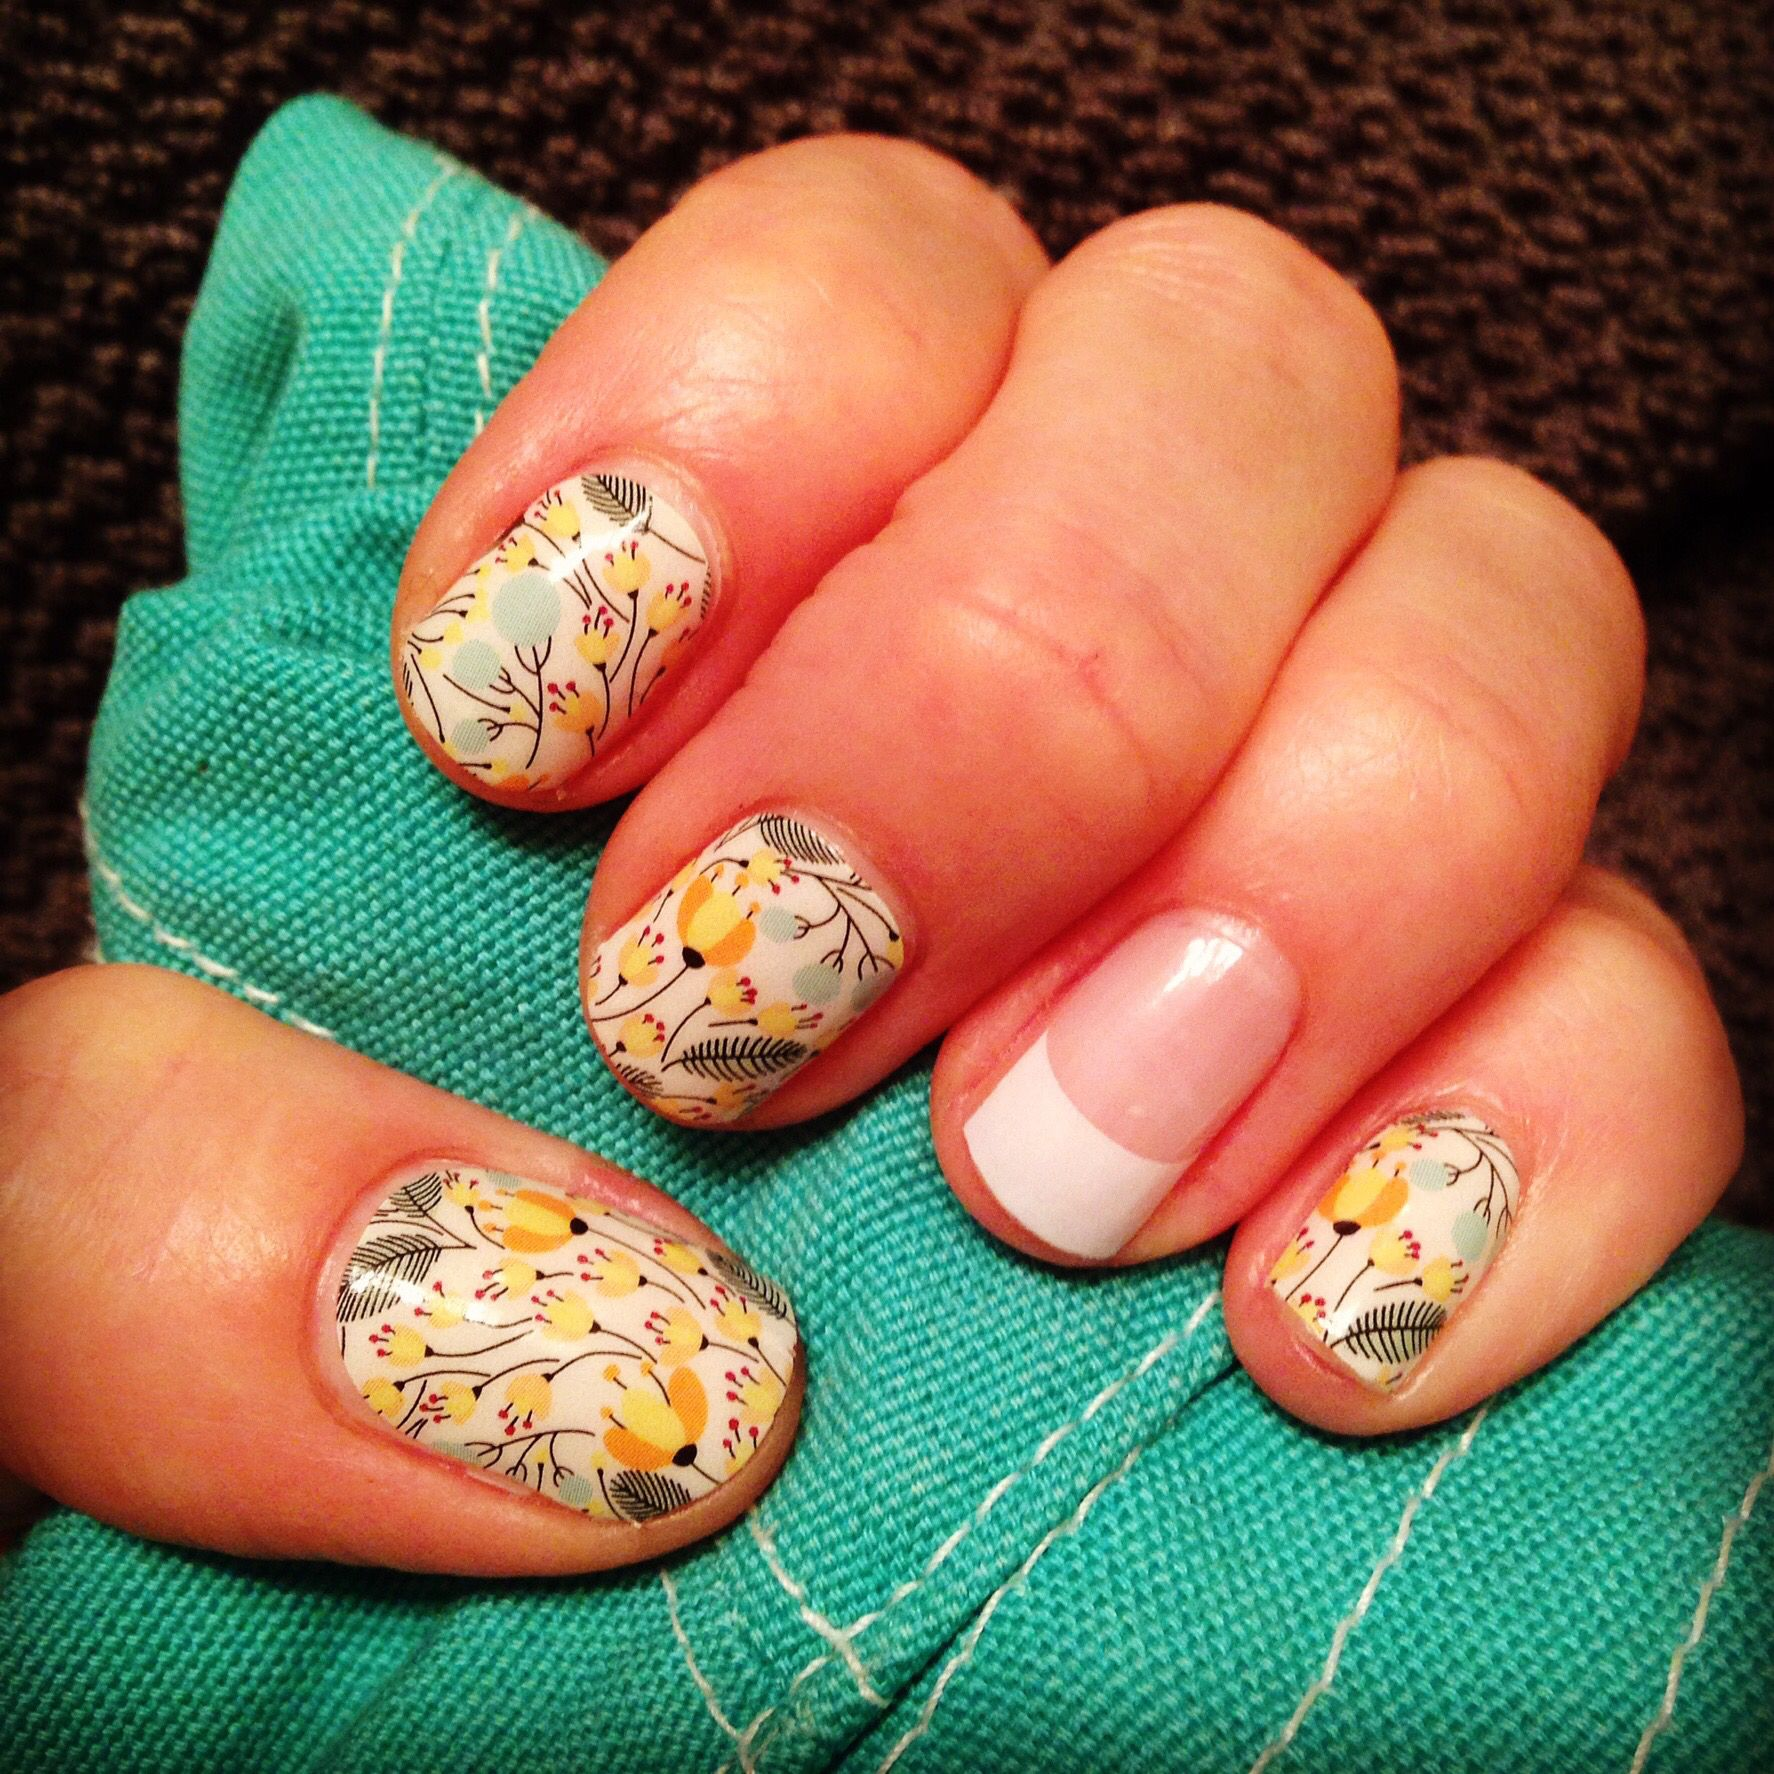 SweetWhimsyjn with a White French Tip Accent new favorite Jamberry ...